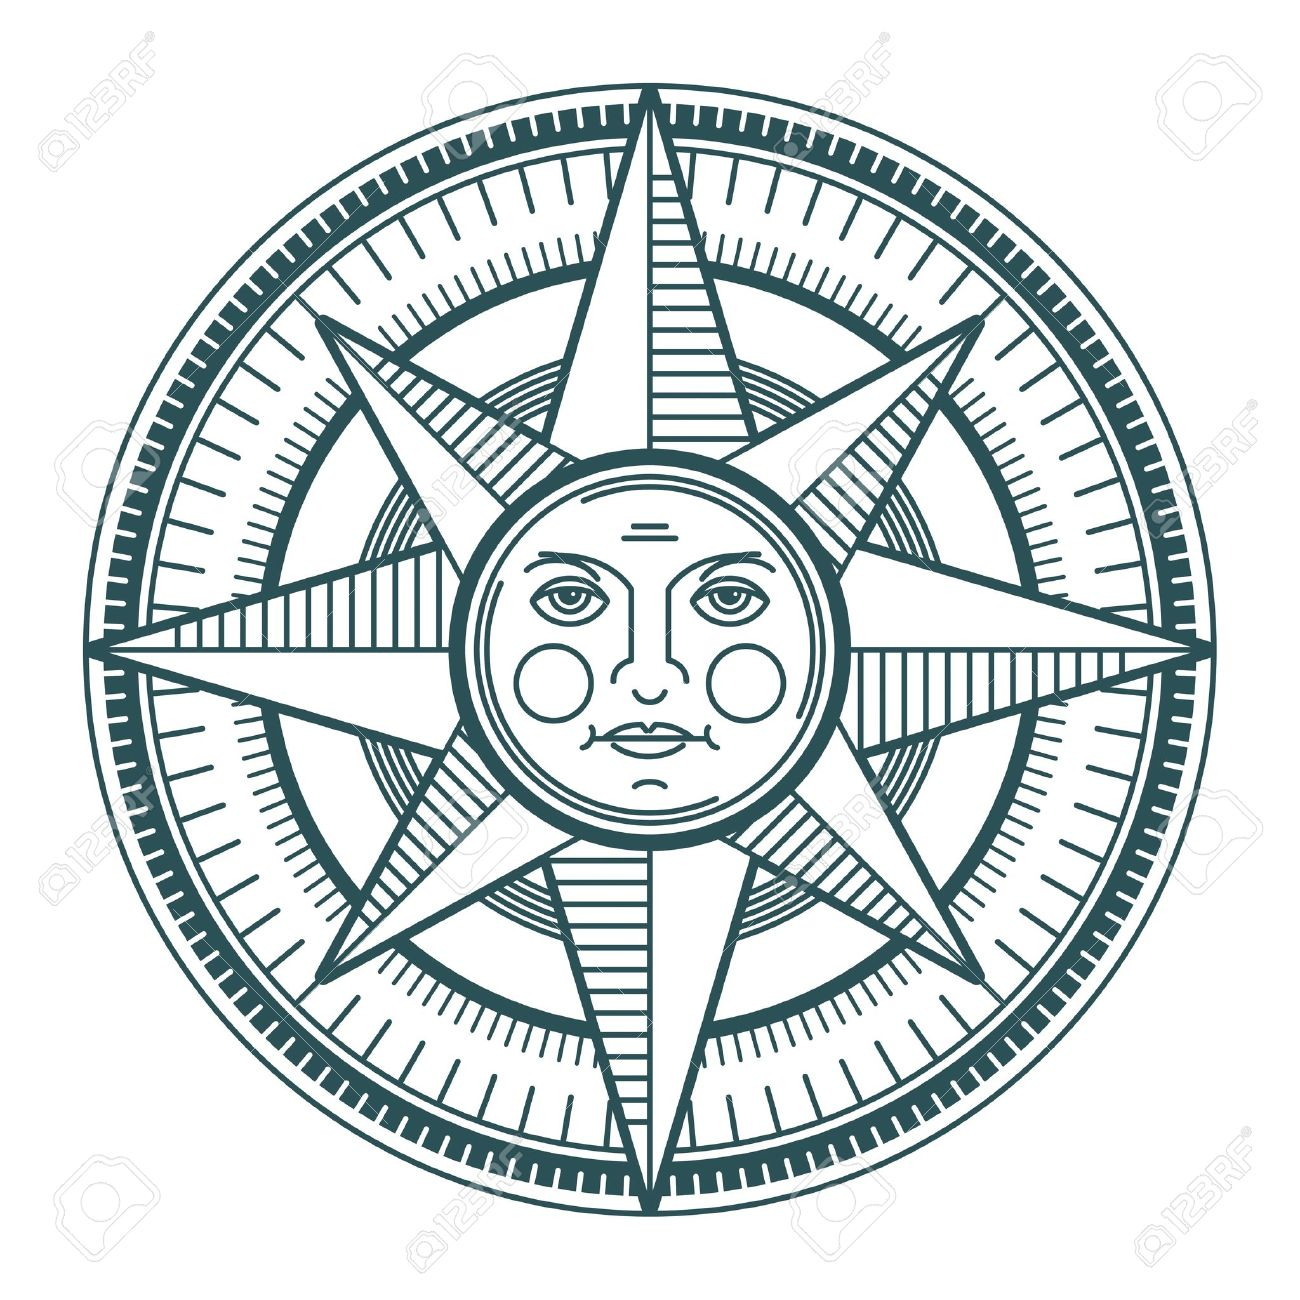 Drawn compass old world Free Vectors Compass And Vintage